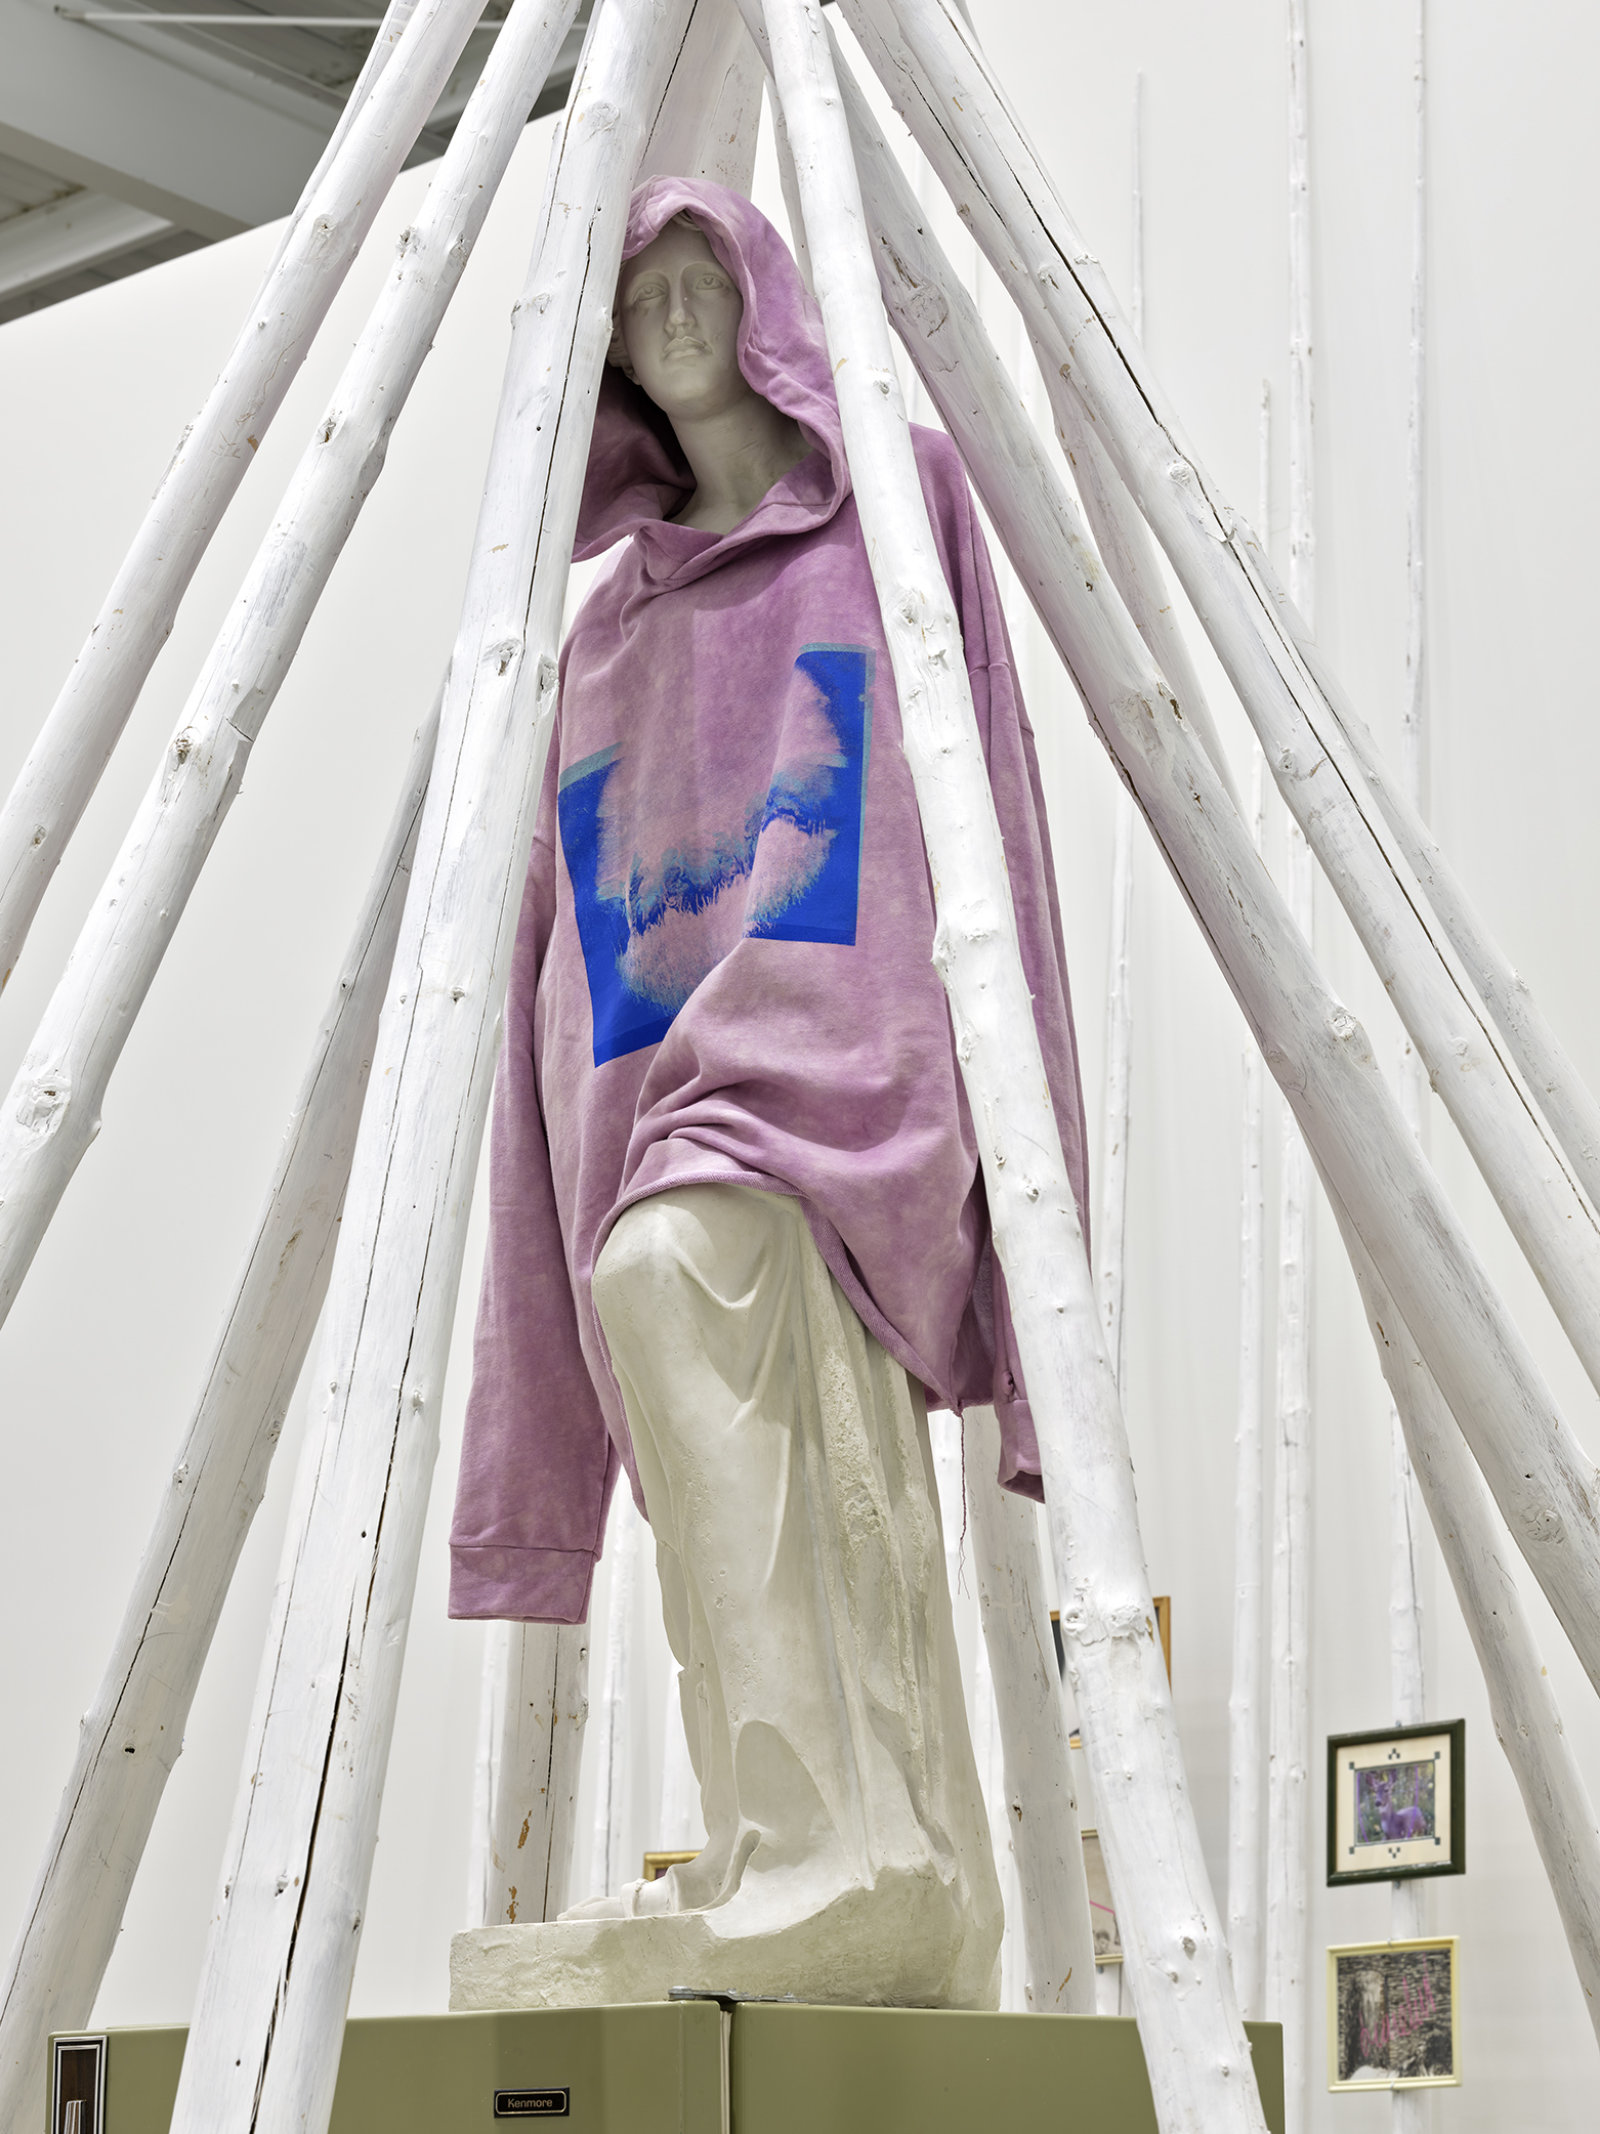 Duane Linklater, what grief conjures (detail), 2020, teepee poles, paint, nylon rope, wooden pallet, refrigerator, tie-down straps, hand truck, plastic statue, handmade hoodie, cochineal dye, silkscreen, 249 x 160 x 160 in. (632 x 406 x 406 cm) by Duane Linklater